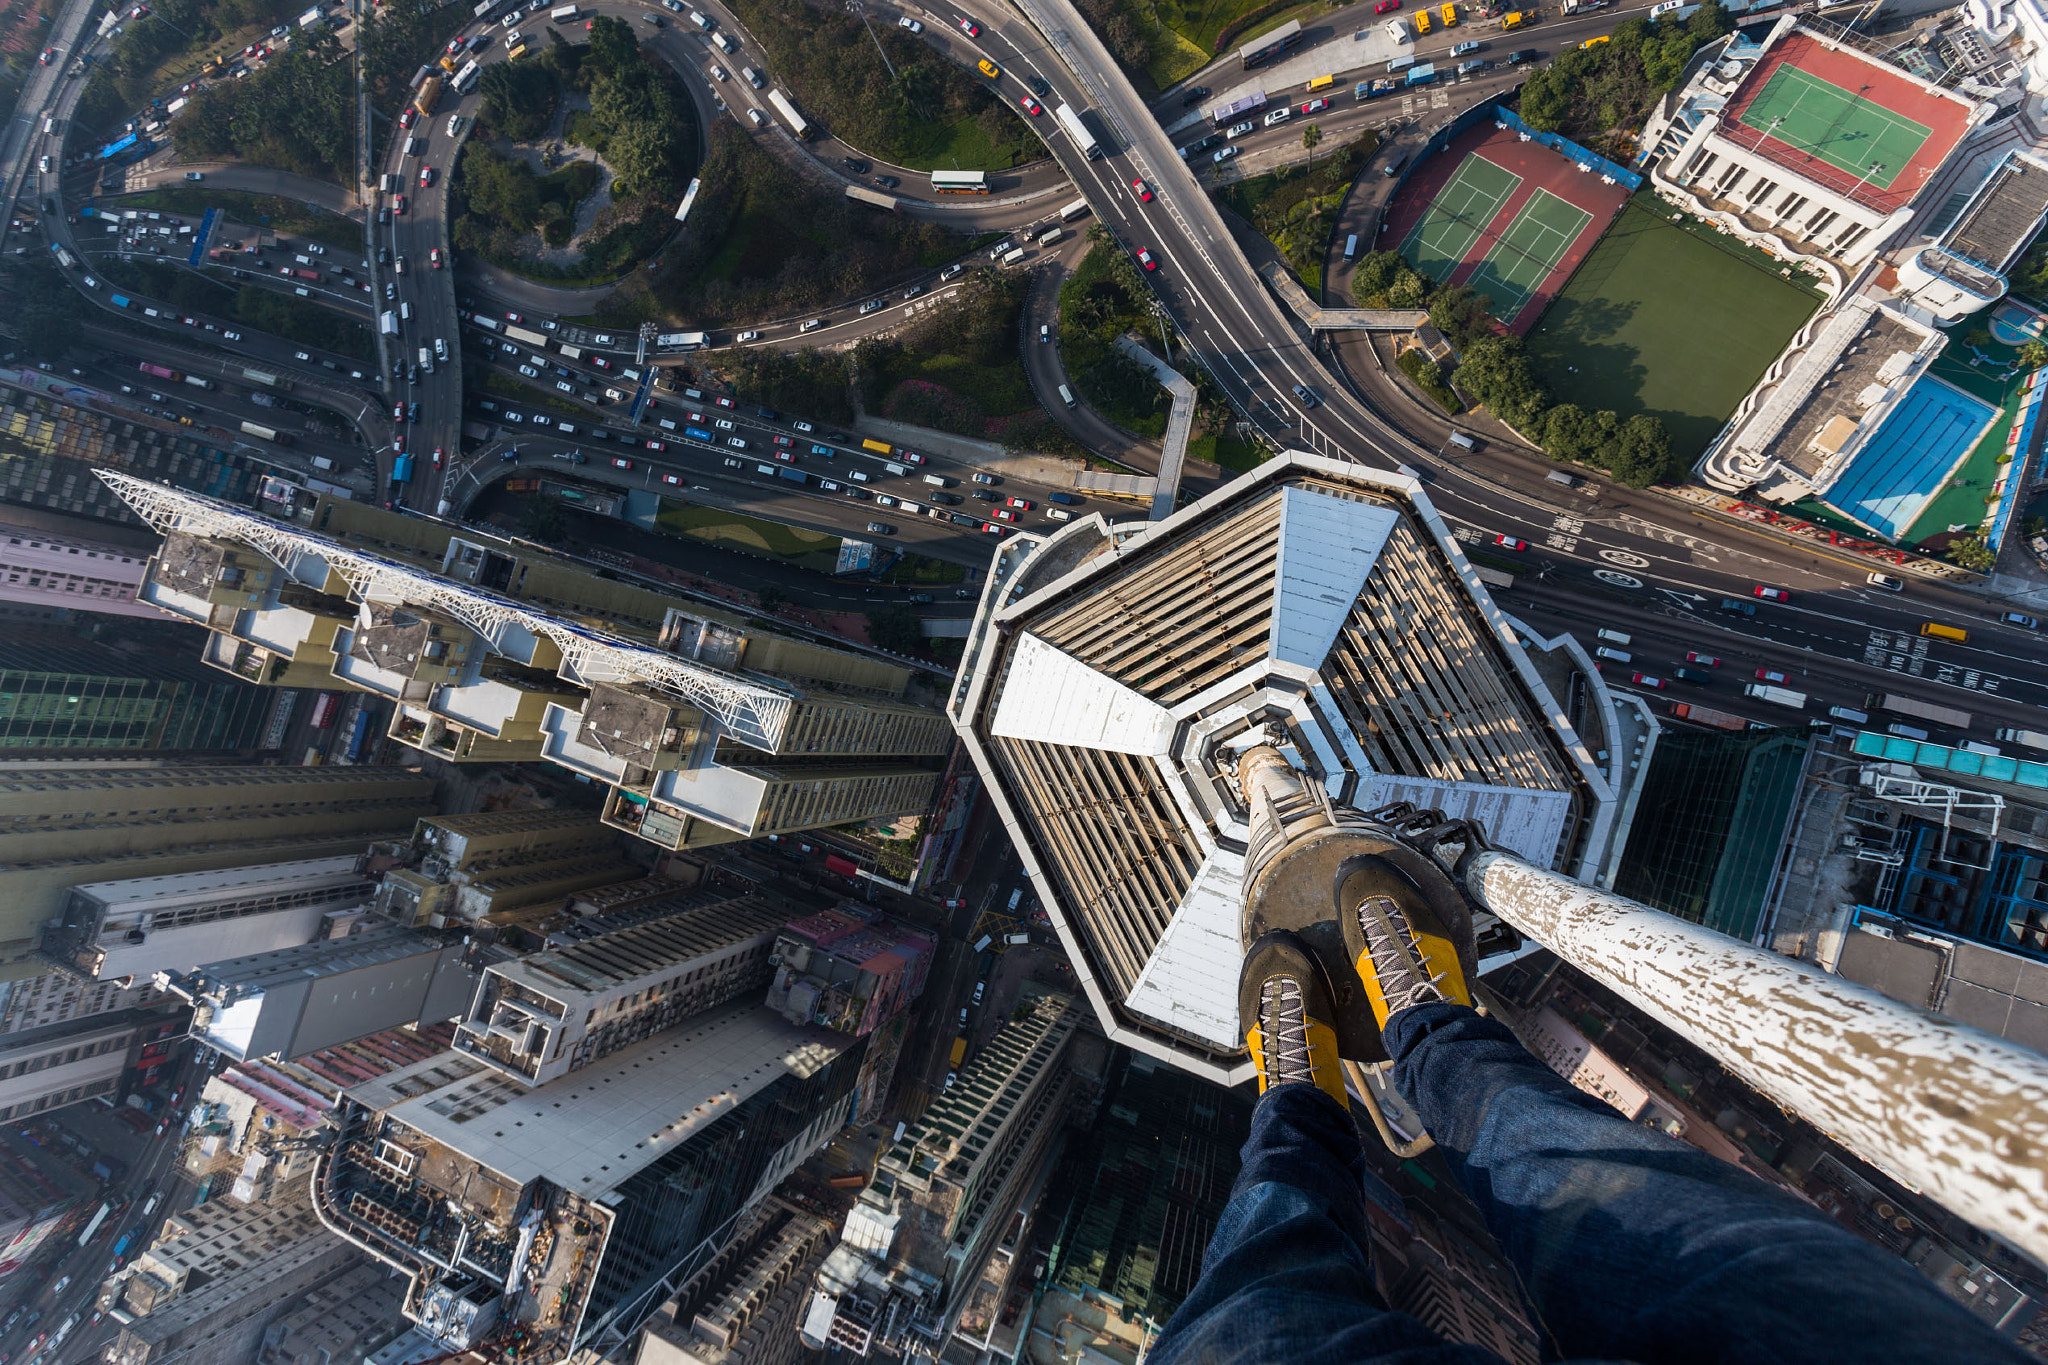 Photograph Fall down Hong-Kong by Vitaliy Raskalov on 500px